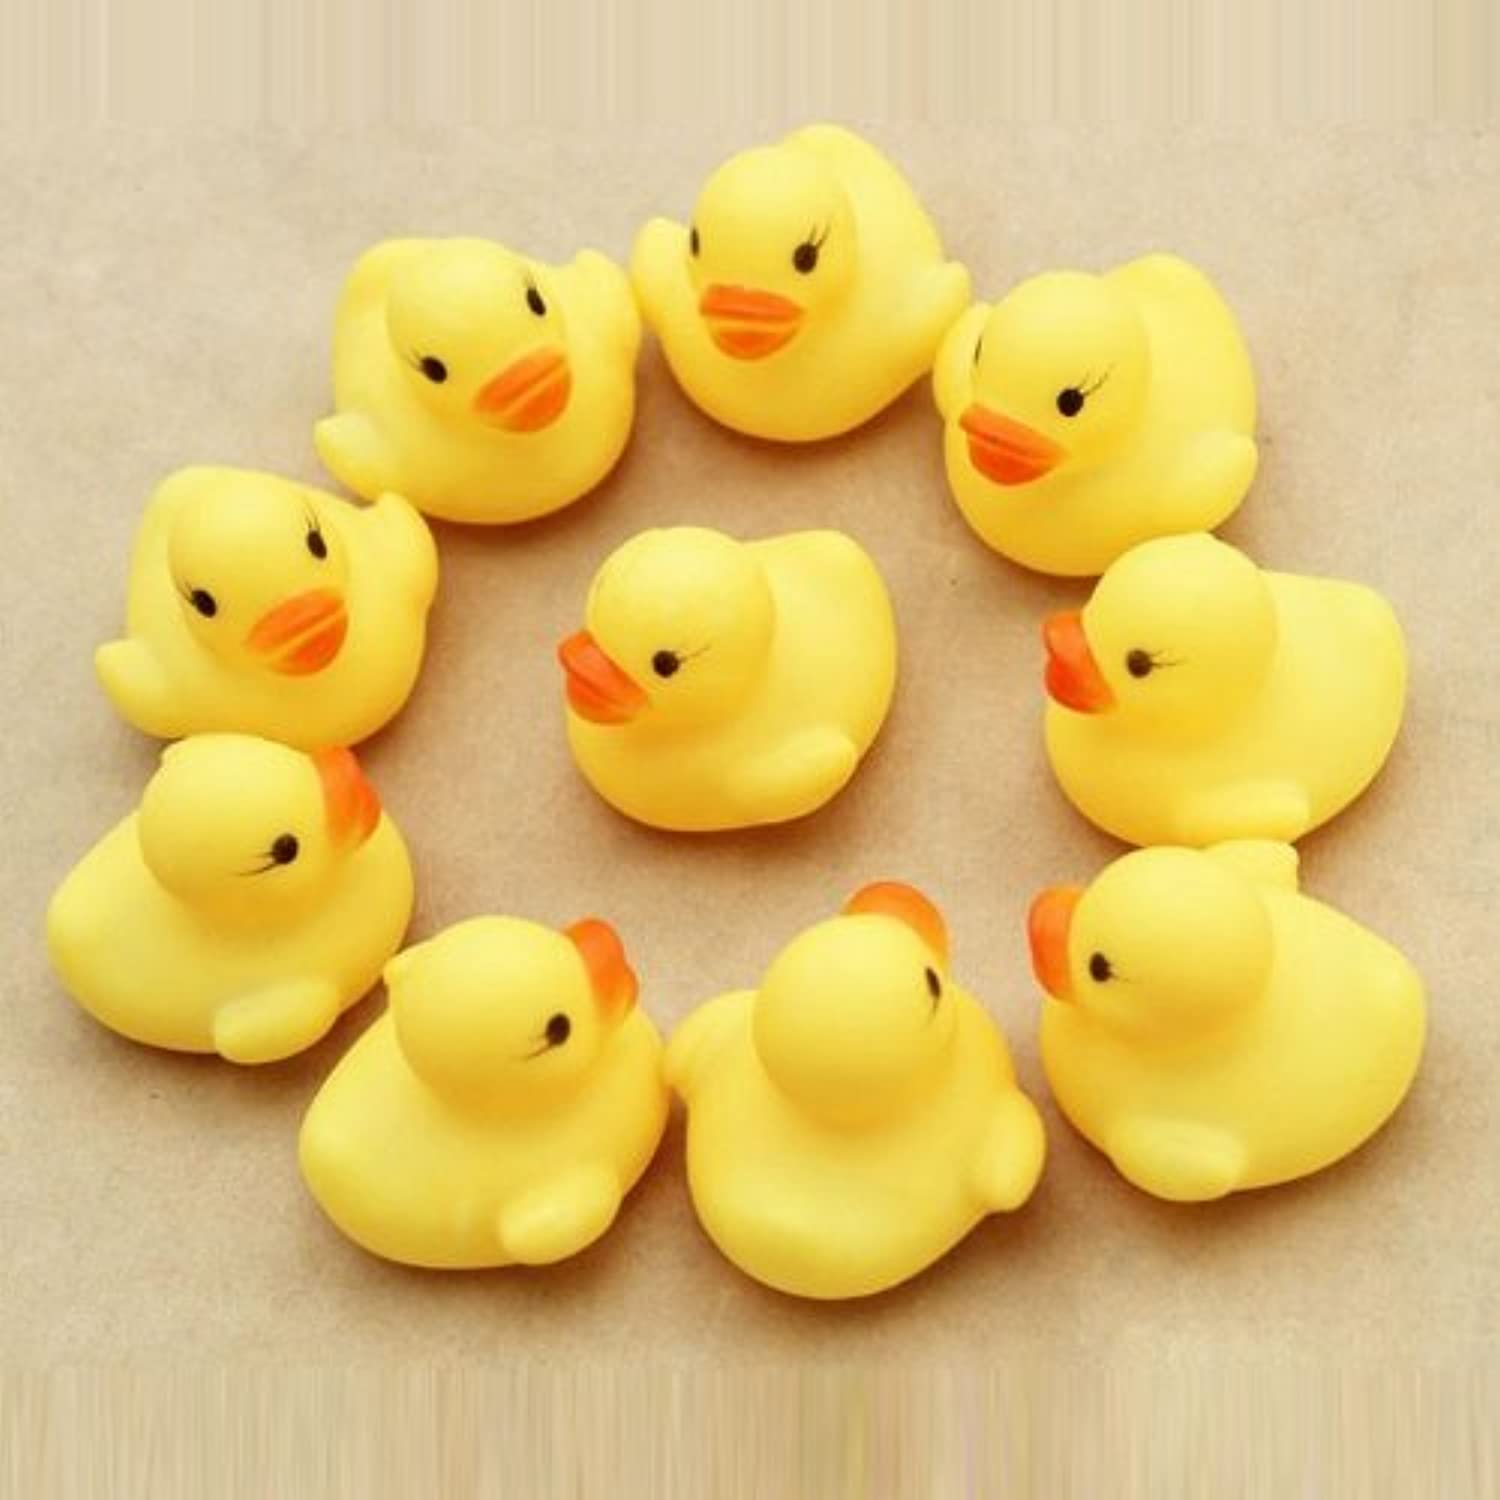 Lowpricenice(TM) Lovely One dozen 12 PC Rubber Duck Ducky Duckie Baby Shower Birthday Party Favors by Lowpricenice [並行輸入品]